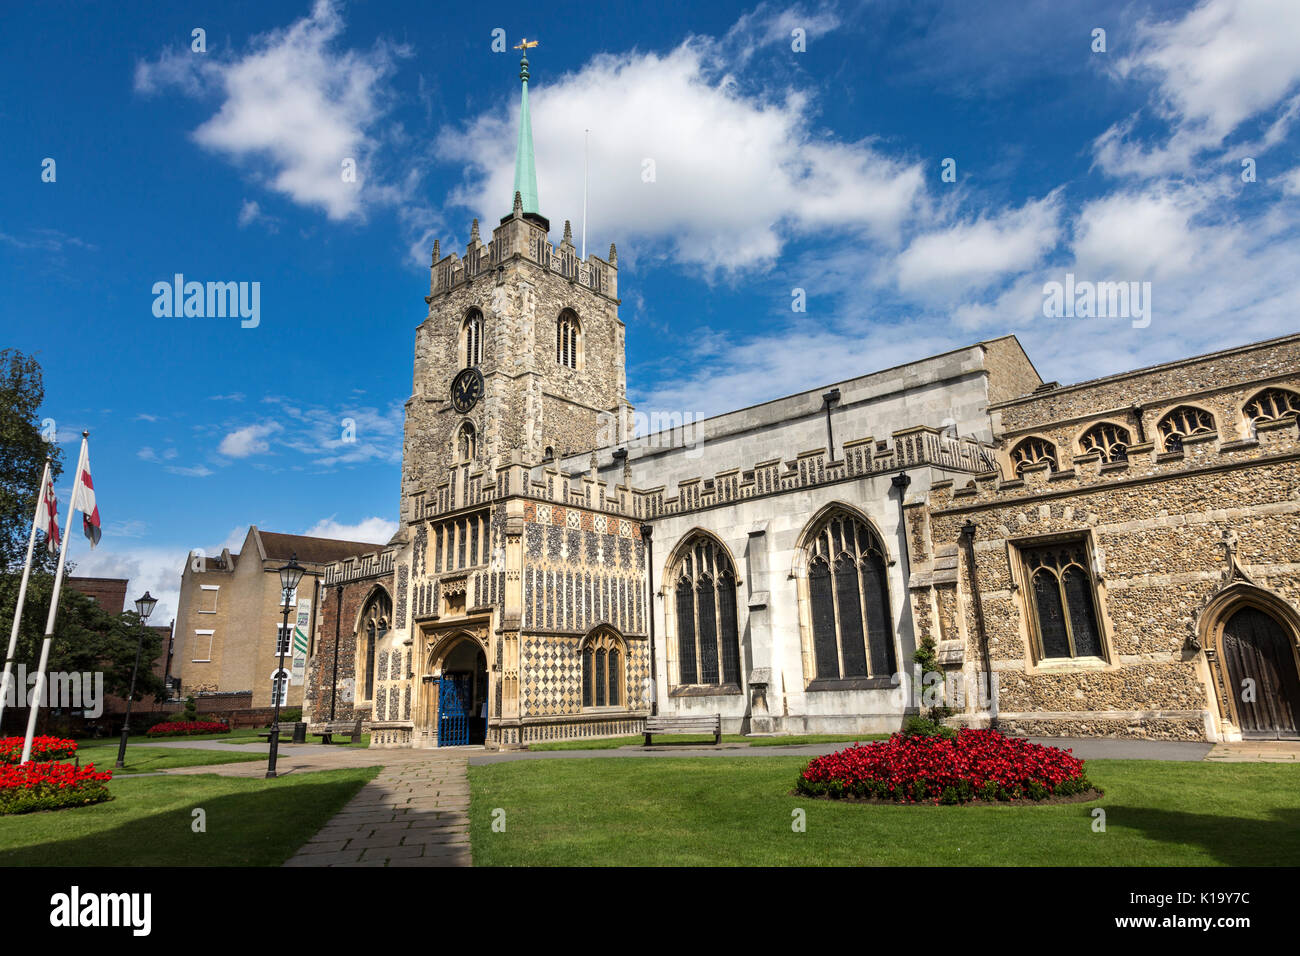 Chelmsford Cathedral in Chelmsford, Essex, UK - Stock Image